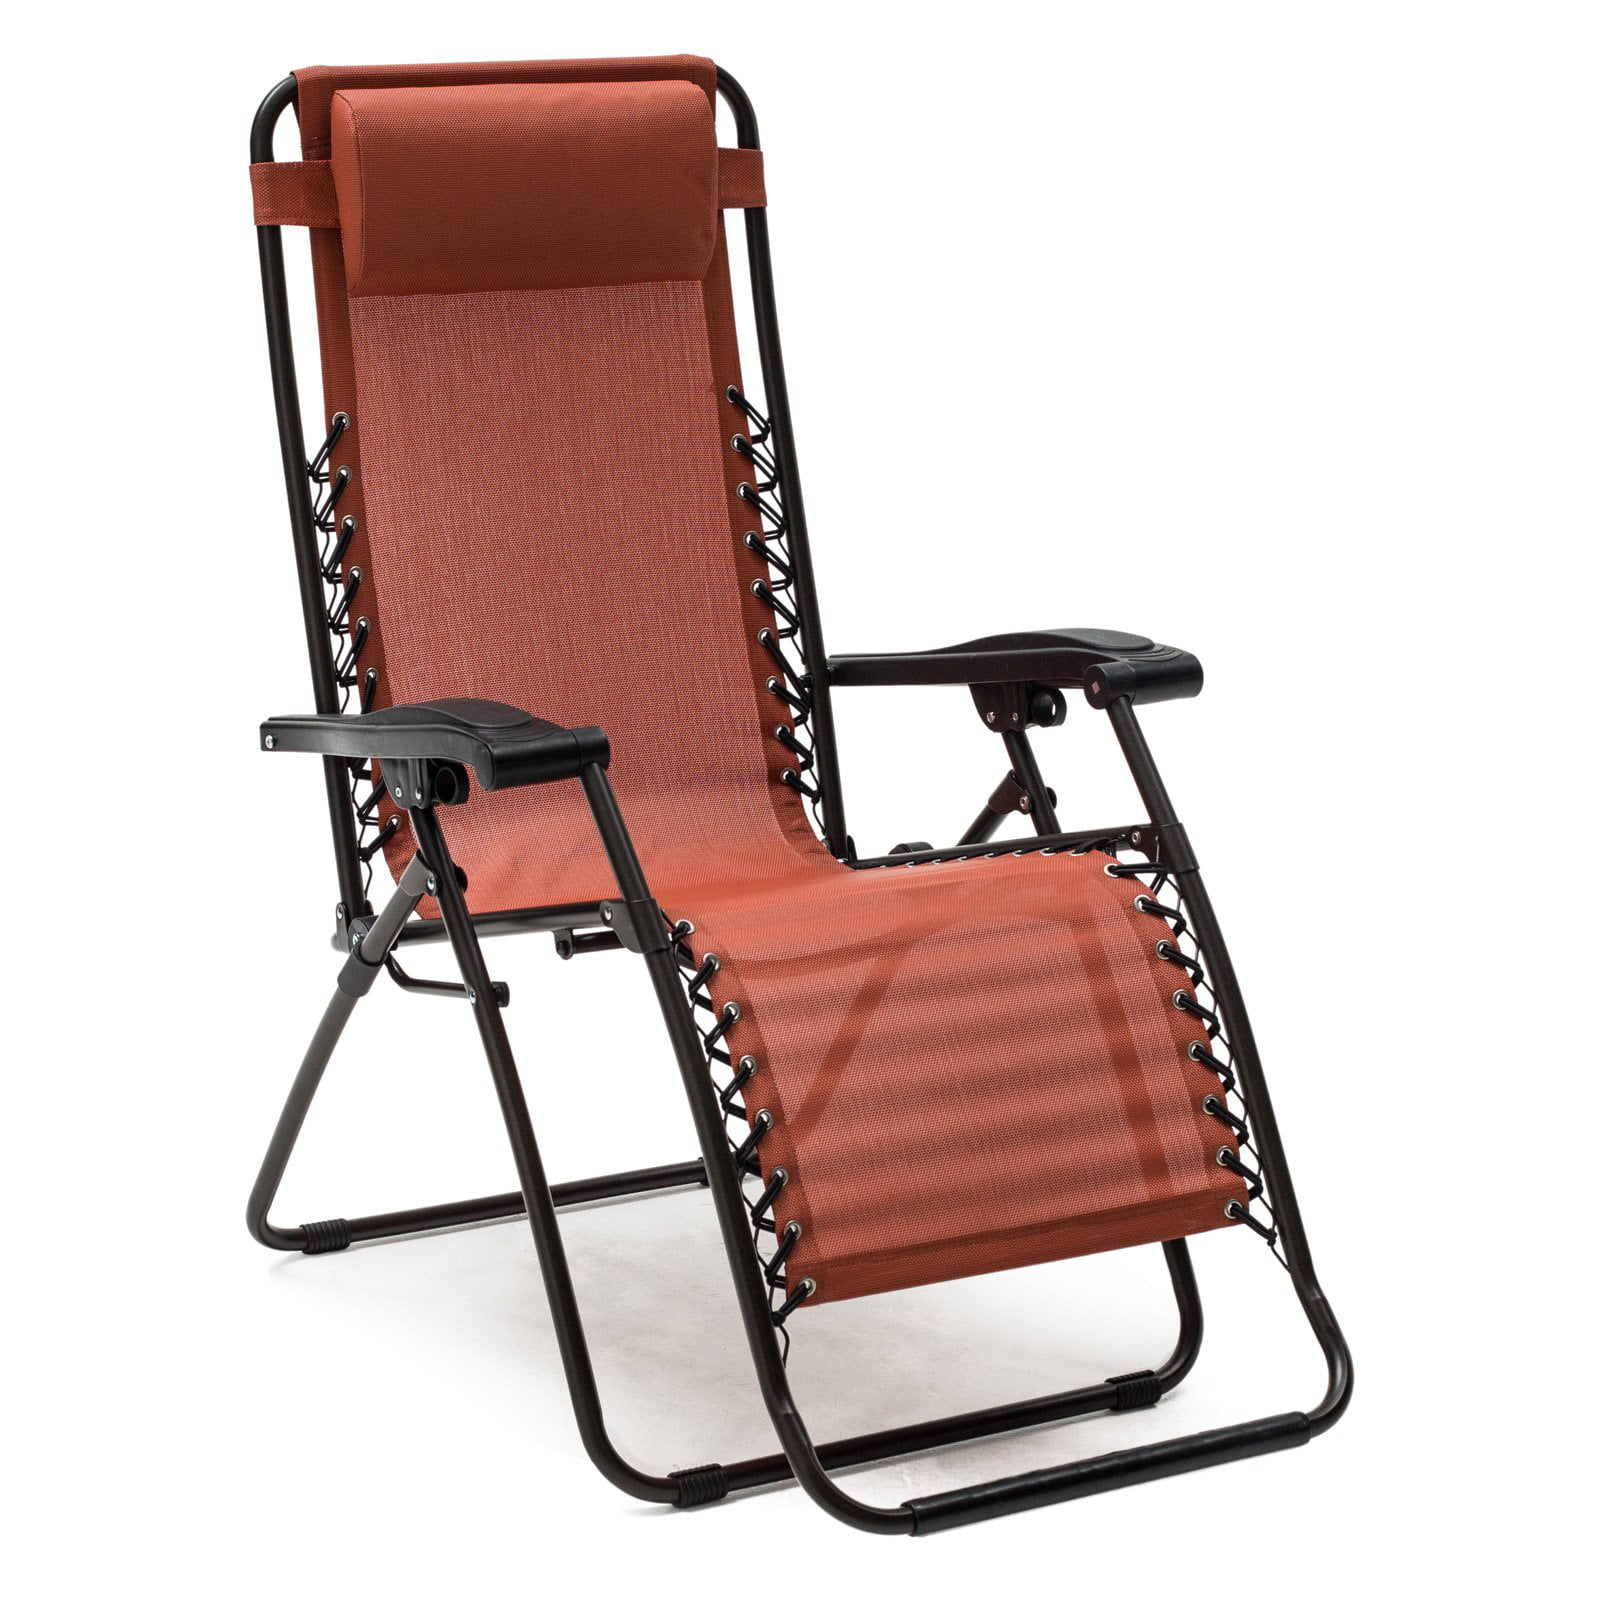 Caravan Sports Zero Gravity Lounge Chair by Caravan Canopy Int'l Inc